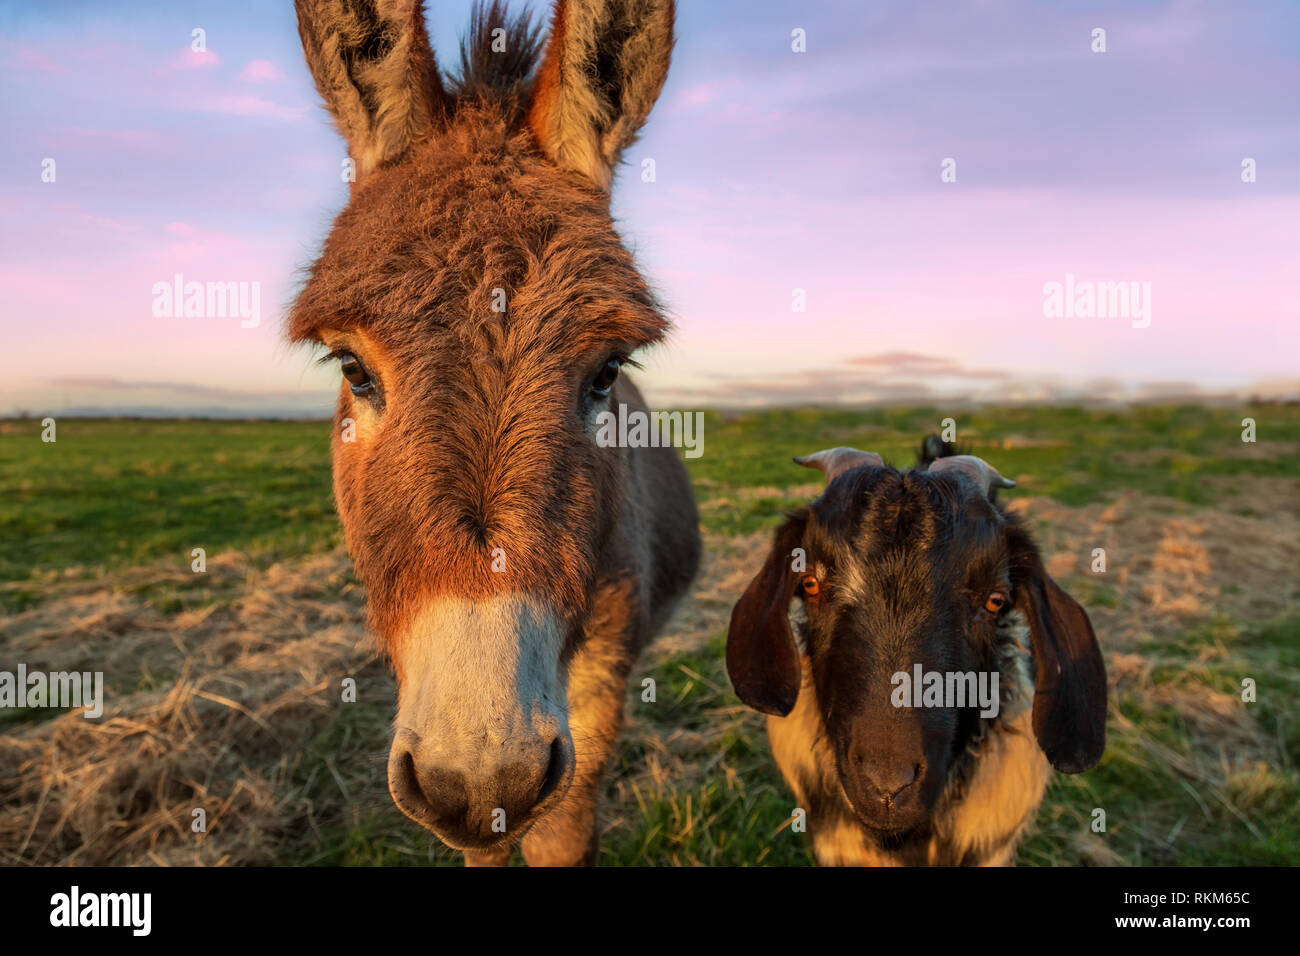 Close-up color image of a donkey and goat with golden sunlight. Stock Photo